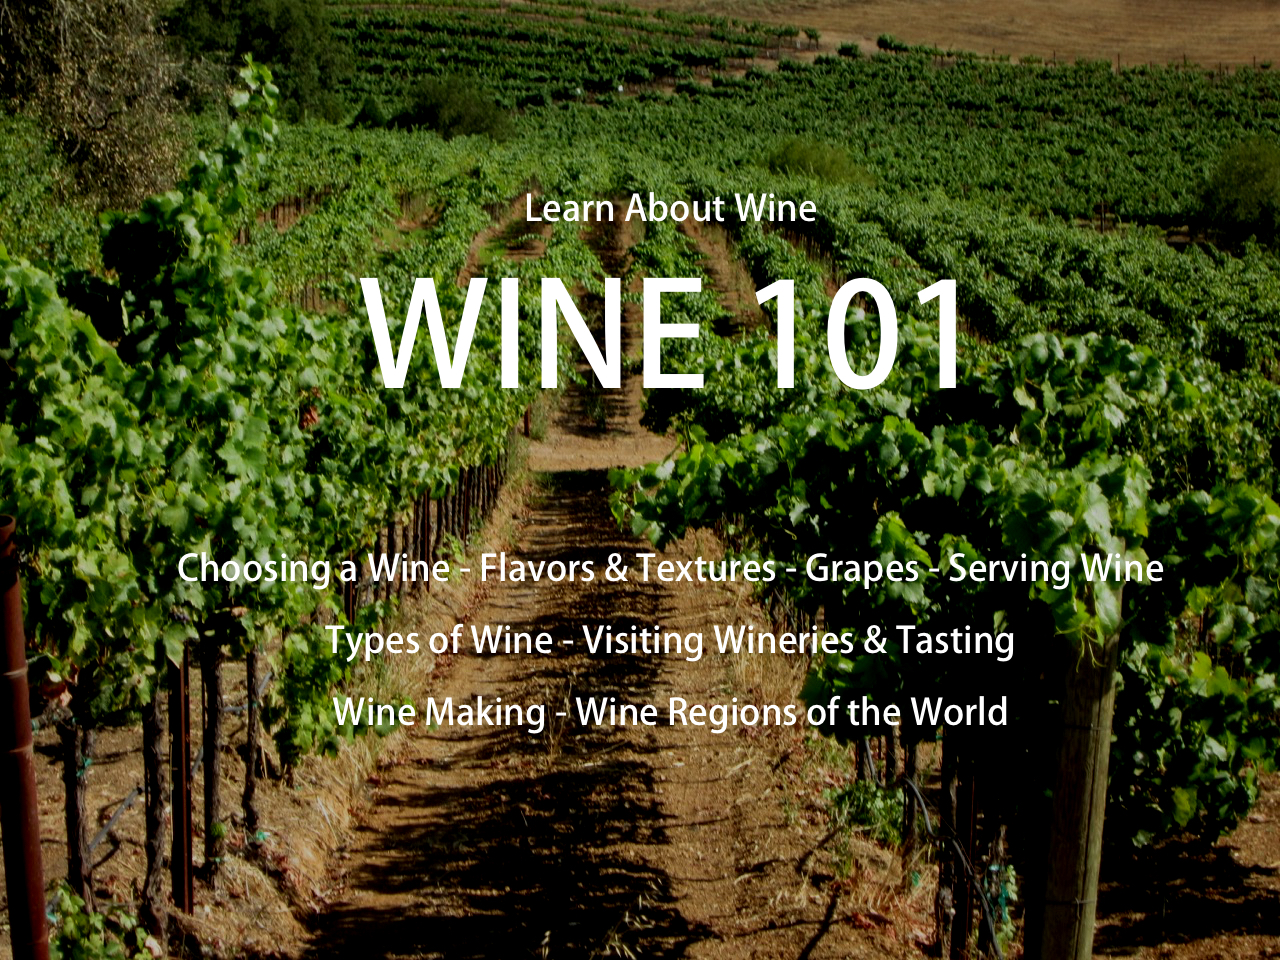 Wine 101 on Vineyard.jpg